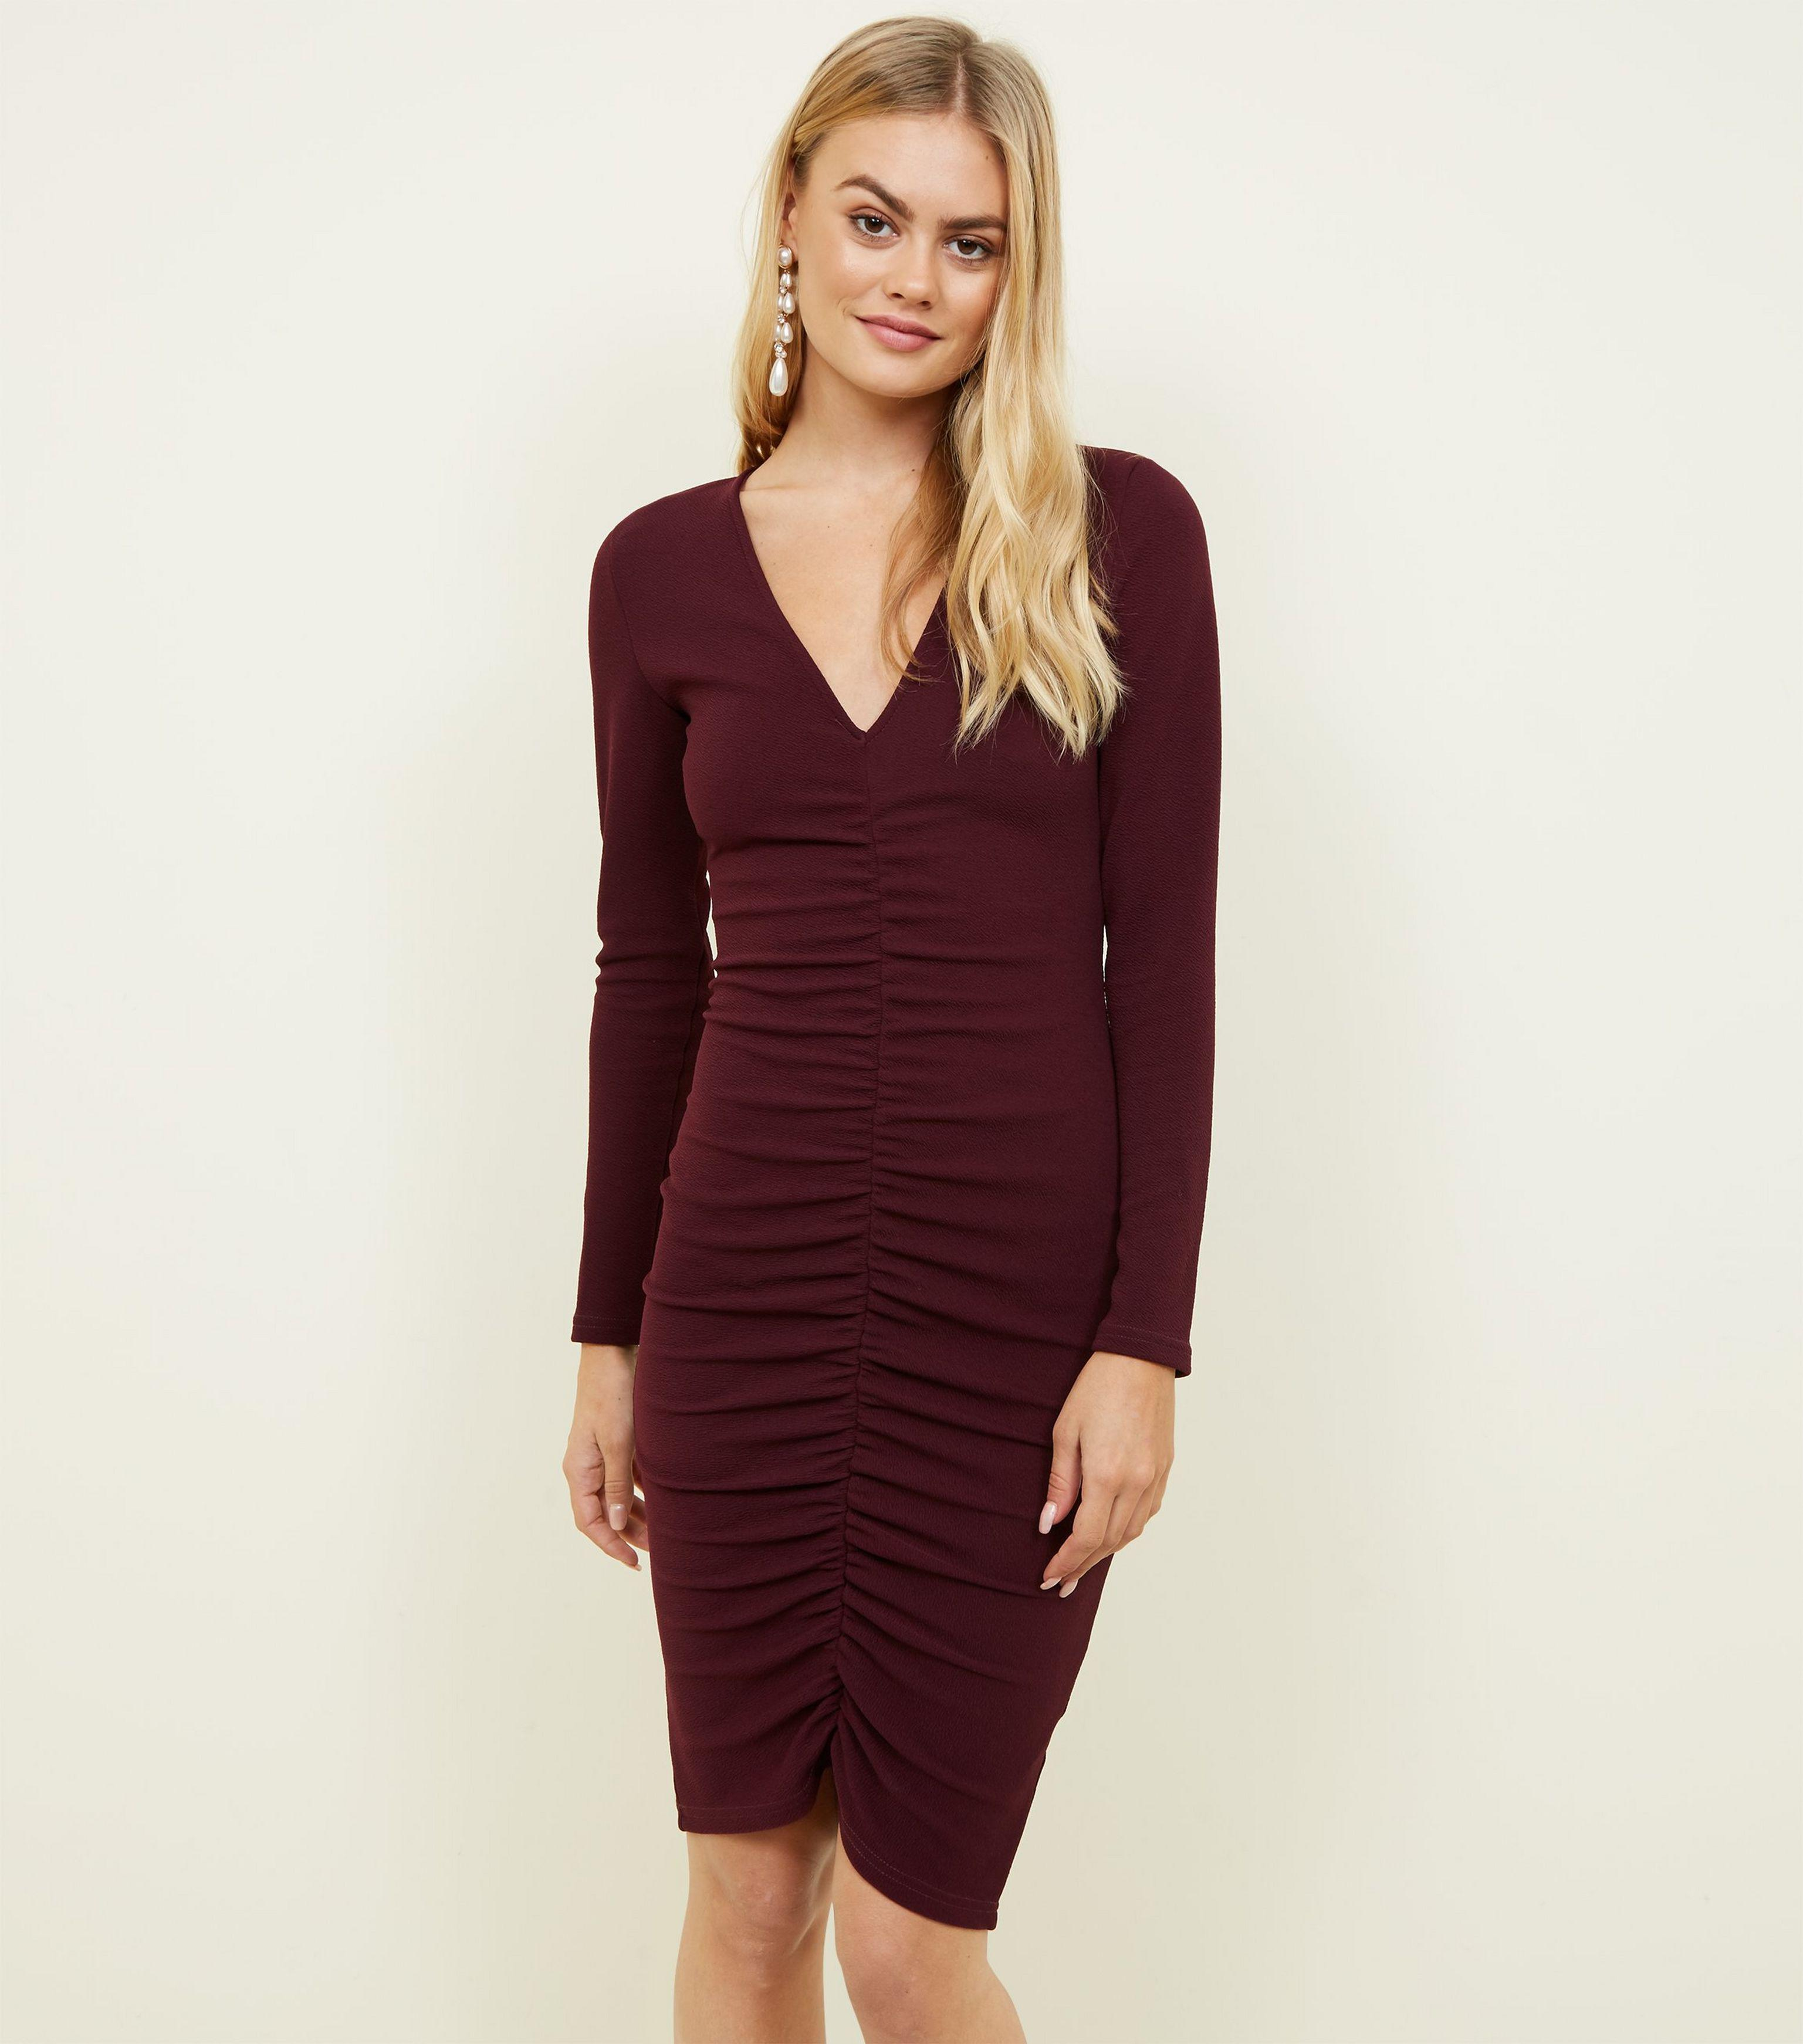 0cce47d9281e AX Paris Burgundy Ruched Front Bodycon Dress in Red - Lyst